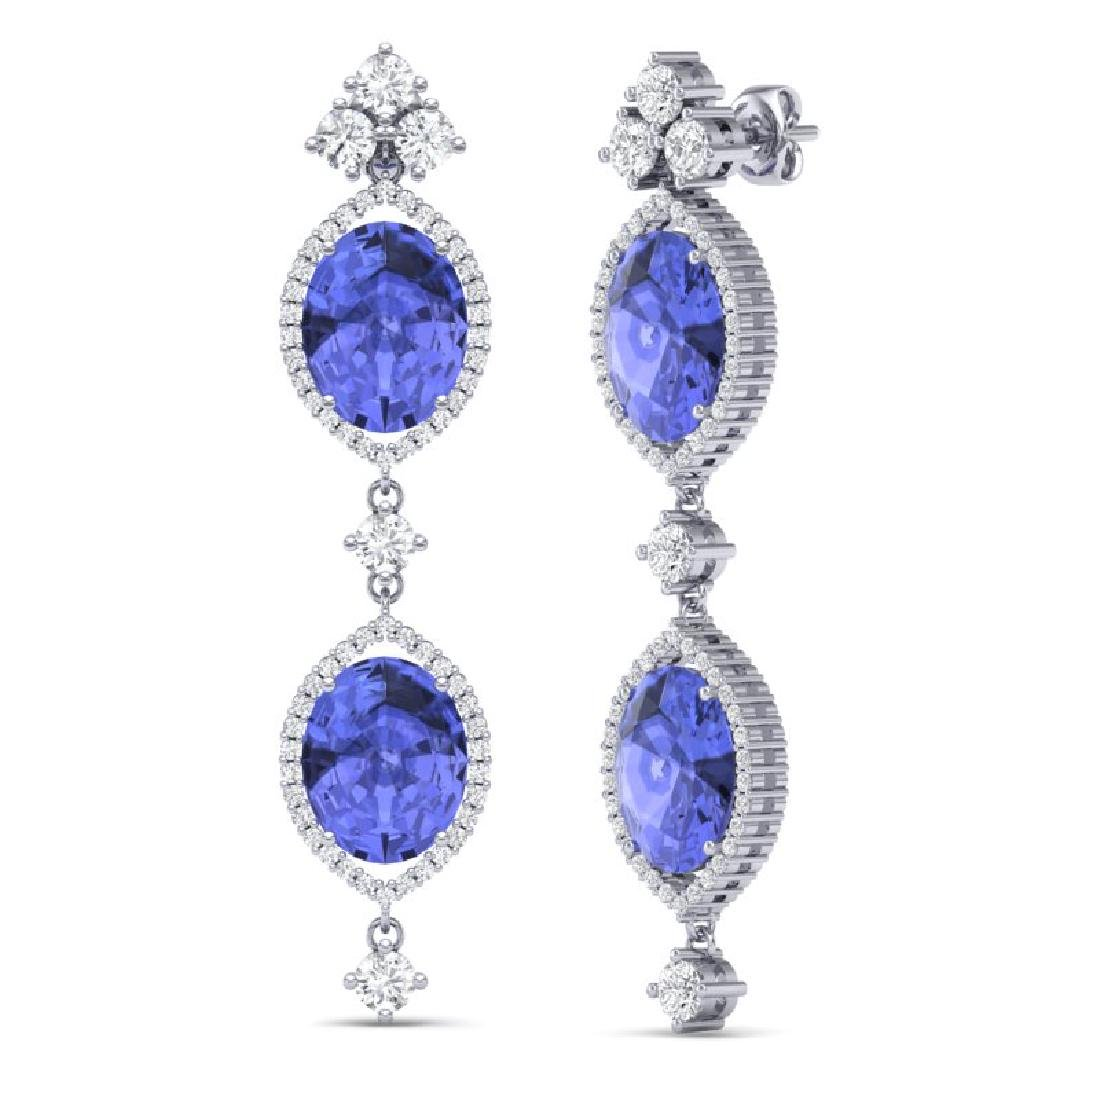 16.21 CTW Royalty Tanzanite & VS Diamond Earrings 18K - 3